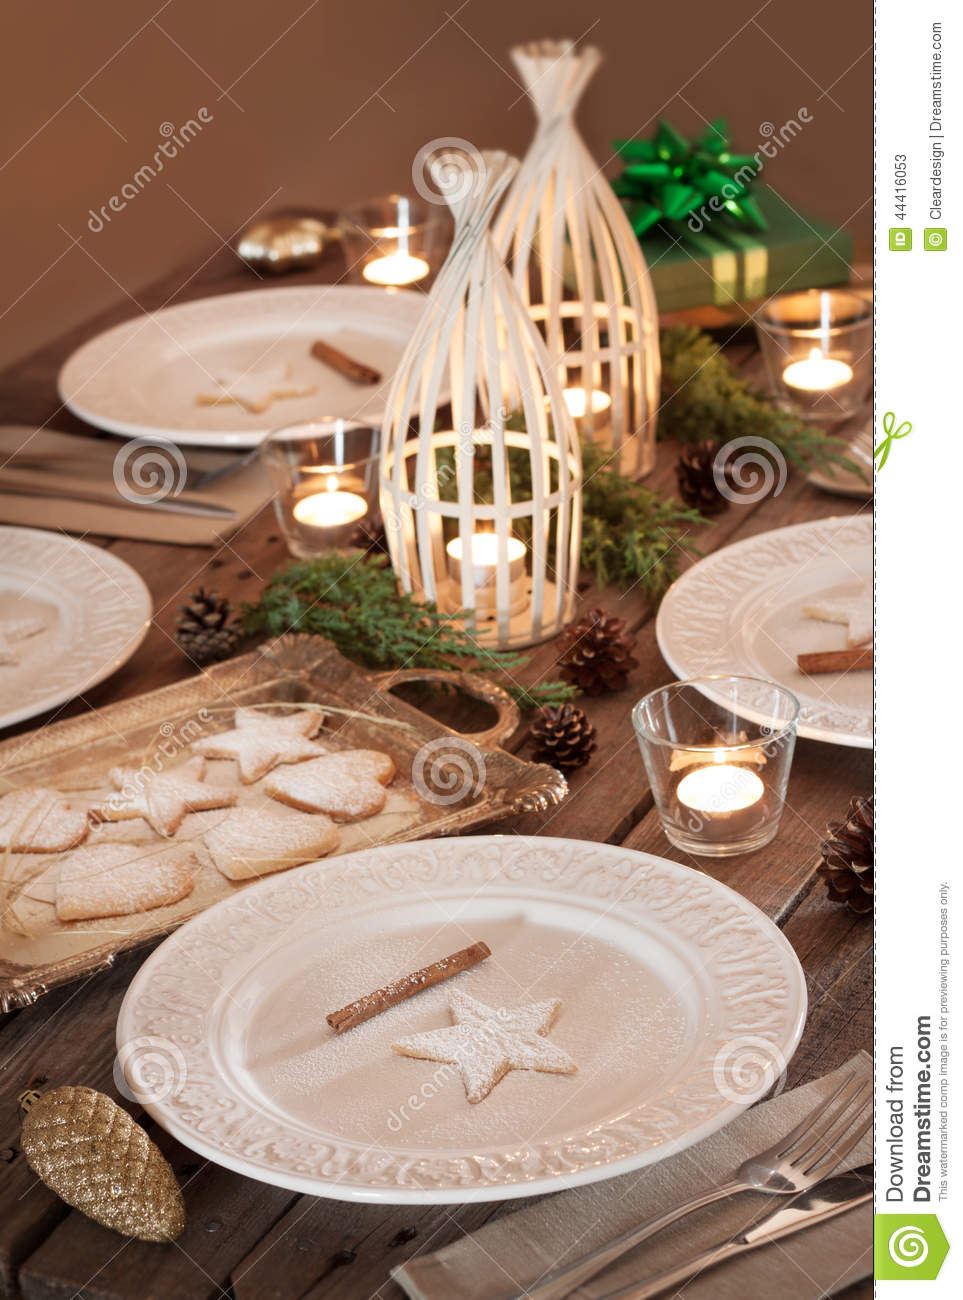 Christmas table setting rustic style natural decorations stock photo imag - Deco de table naturel ...